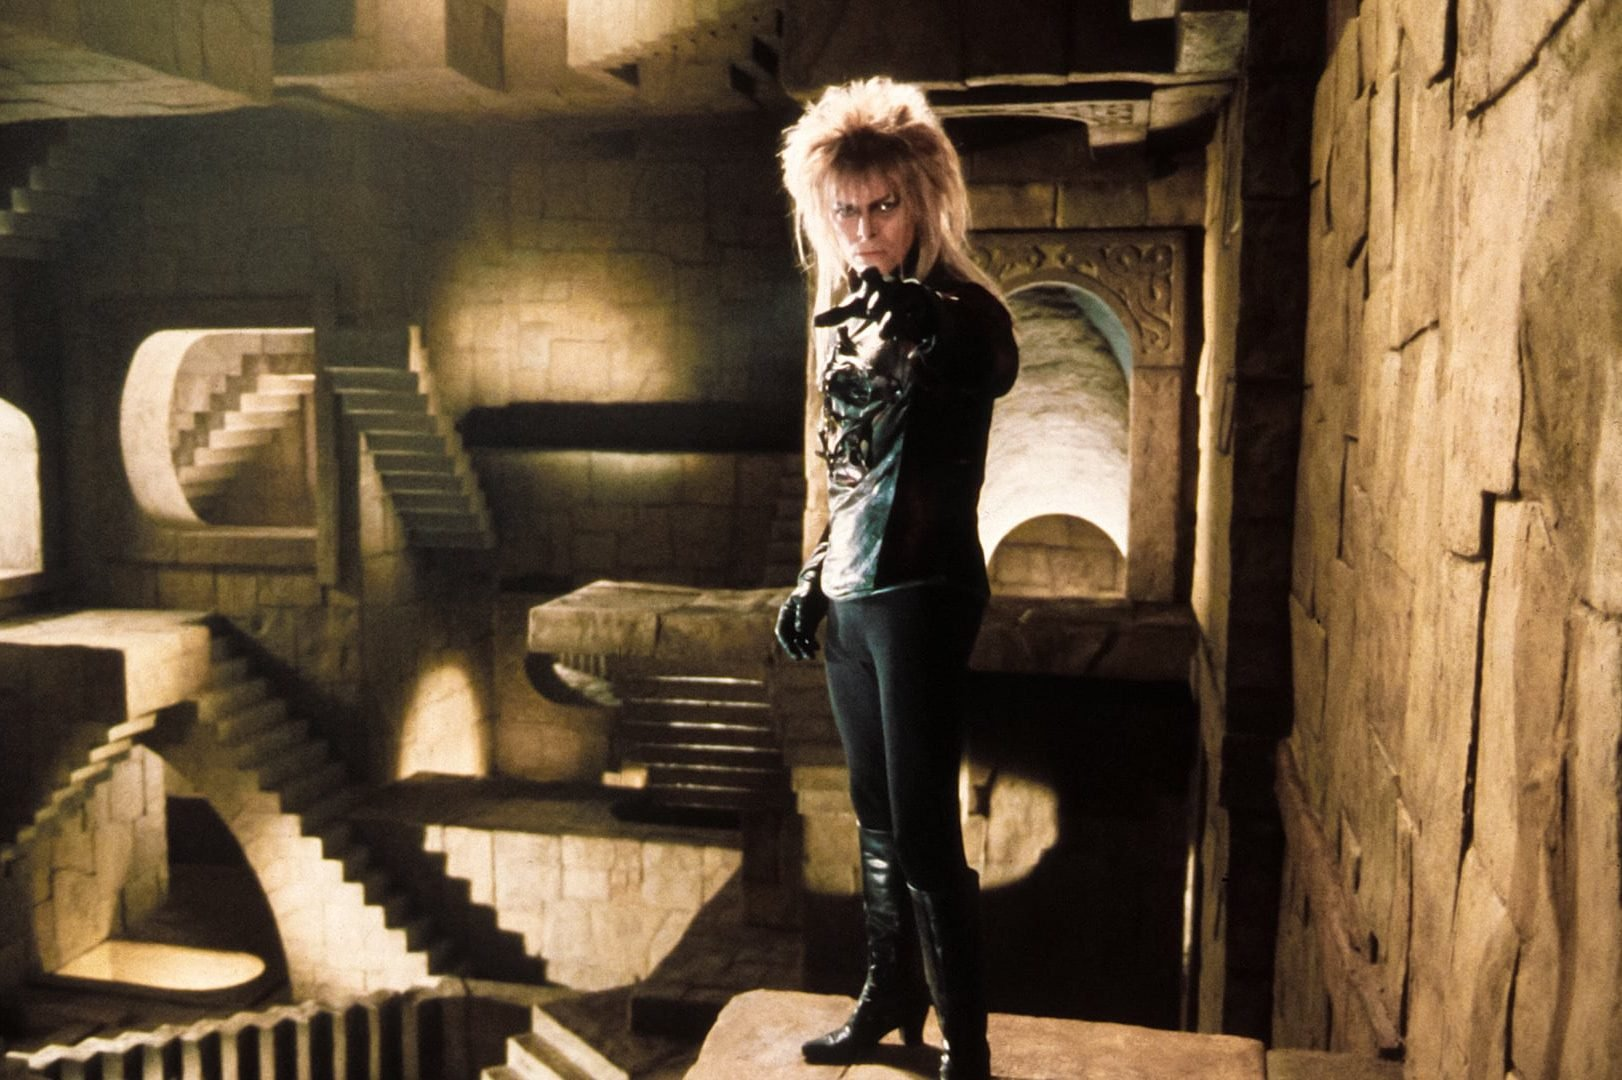 vrYkUgAdfKr1jQNwcp5aWzj1mSg e1632316516579 10 Things You Never Knew About Labyrinth